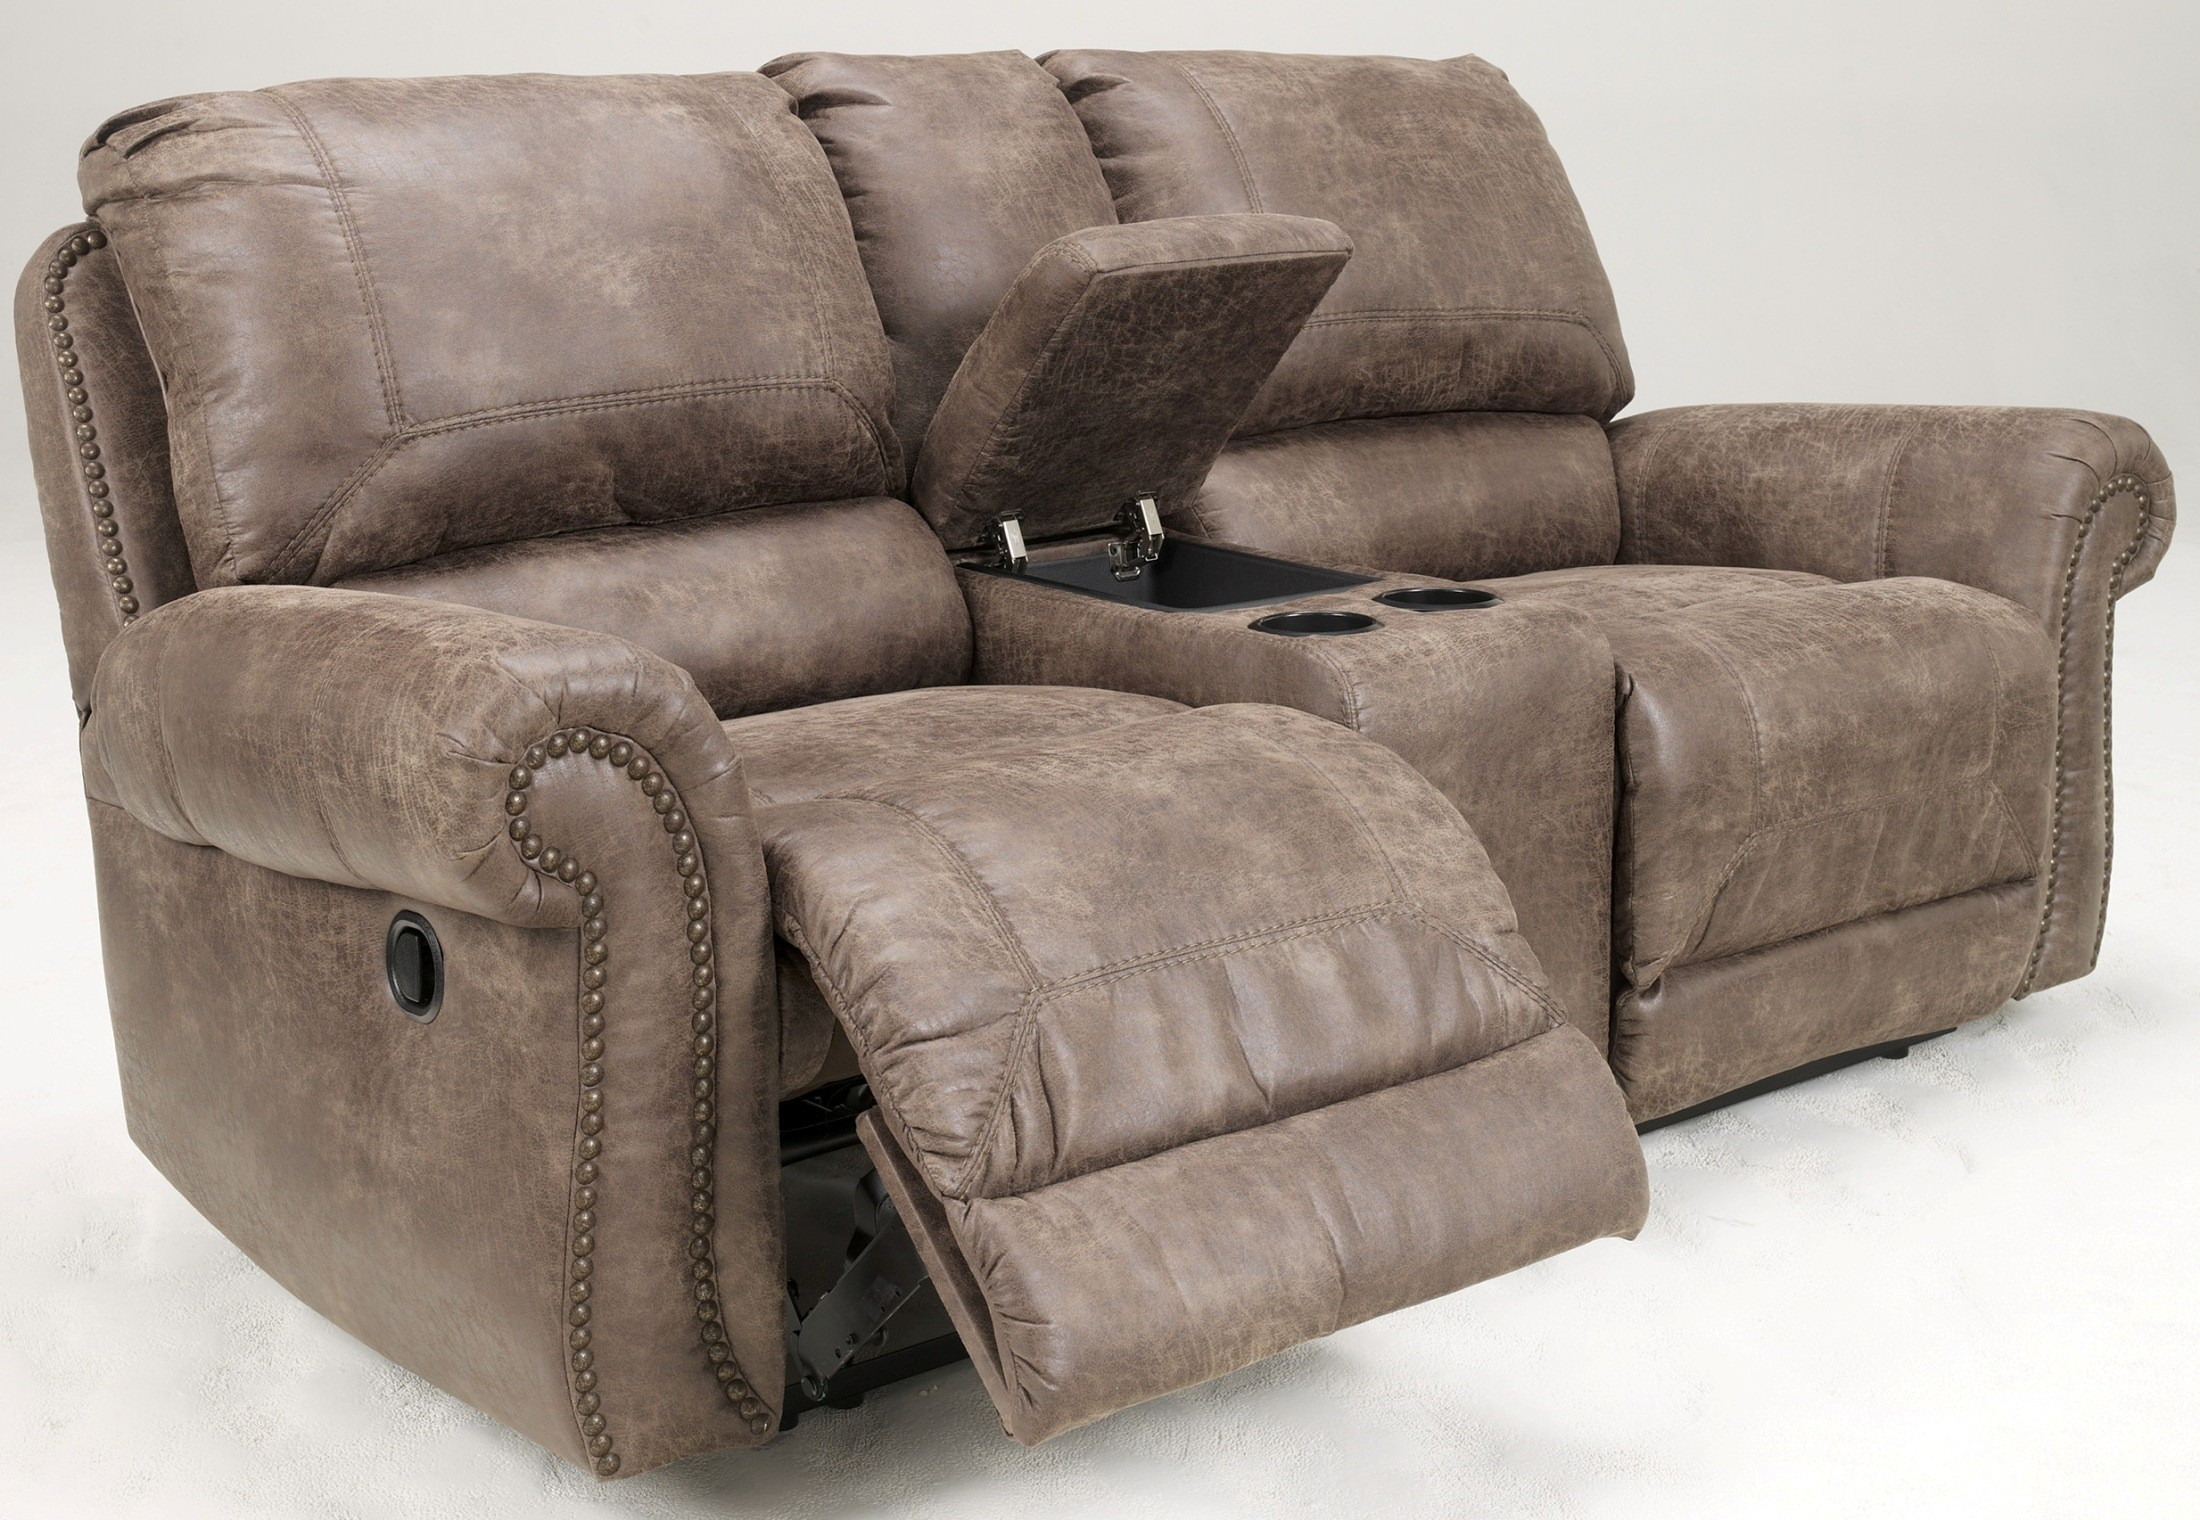 Oberson Gunsmoke Double Power Reclining Loveseat With Console From Ashley 7410096 Coleman